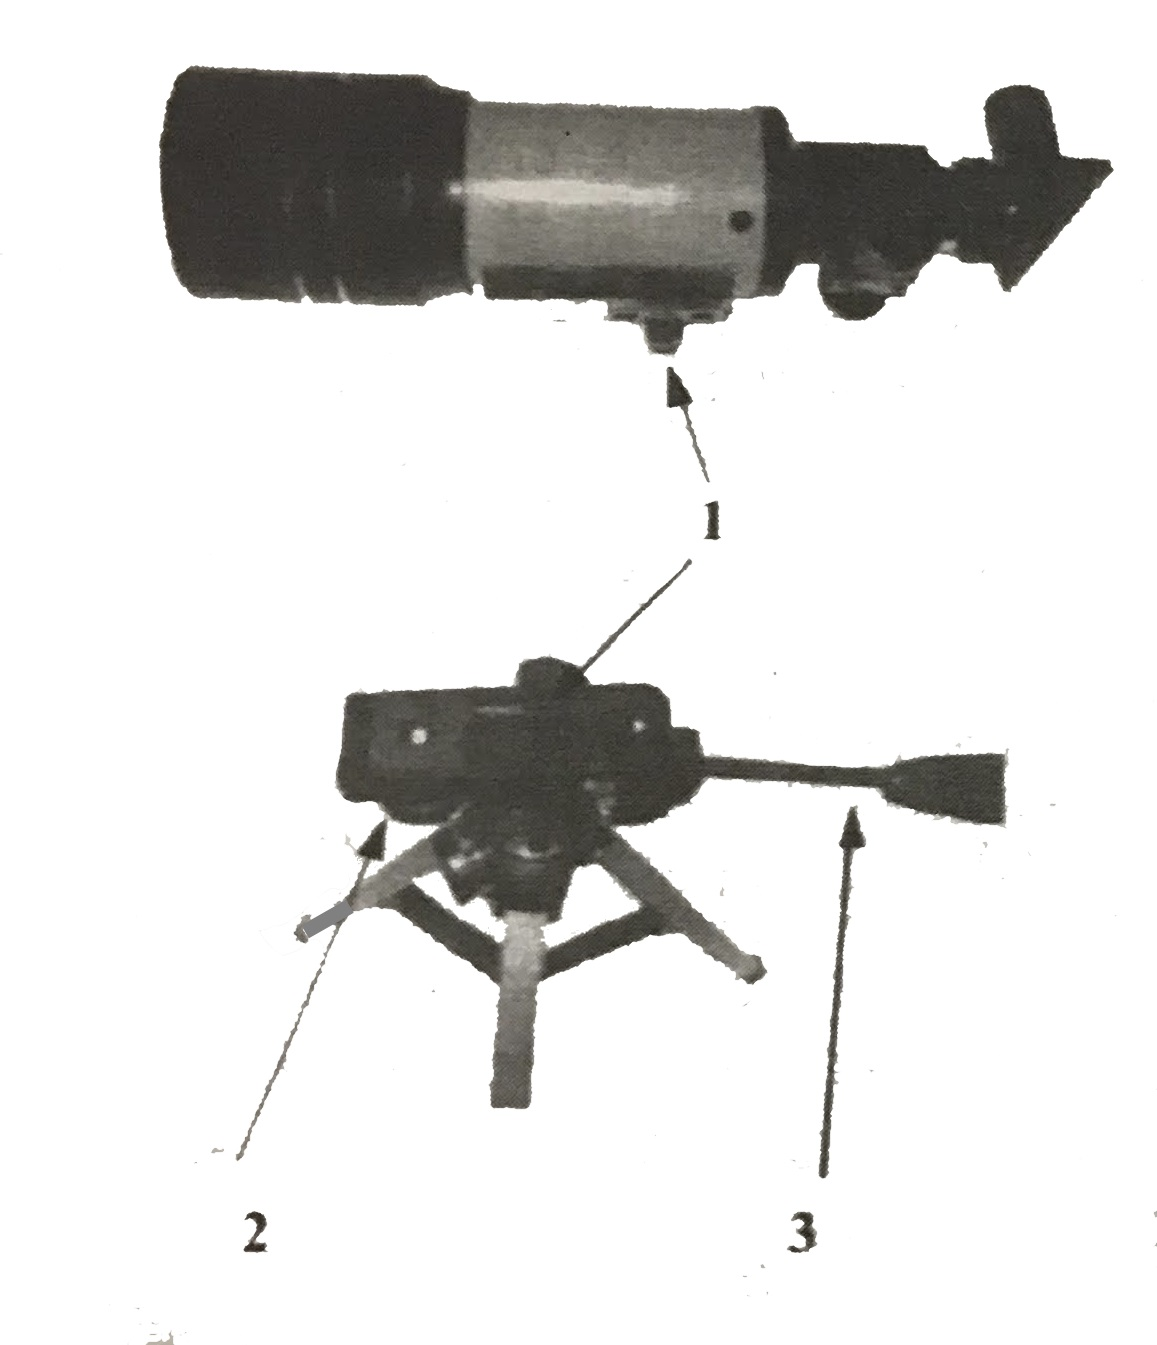 Terrestrial and Aastronomical Telescope Instruction